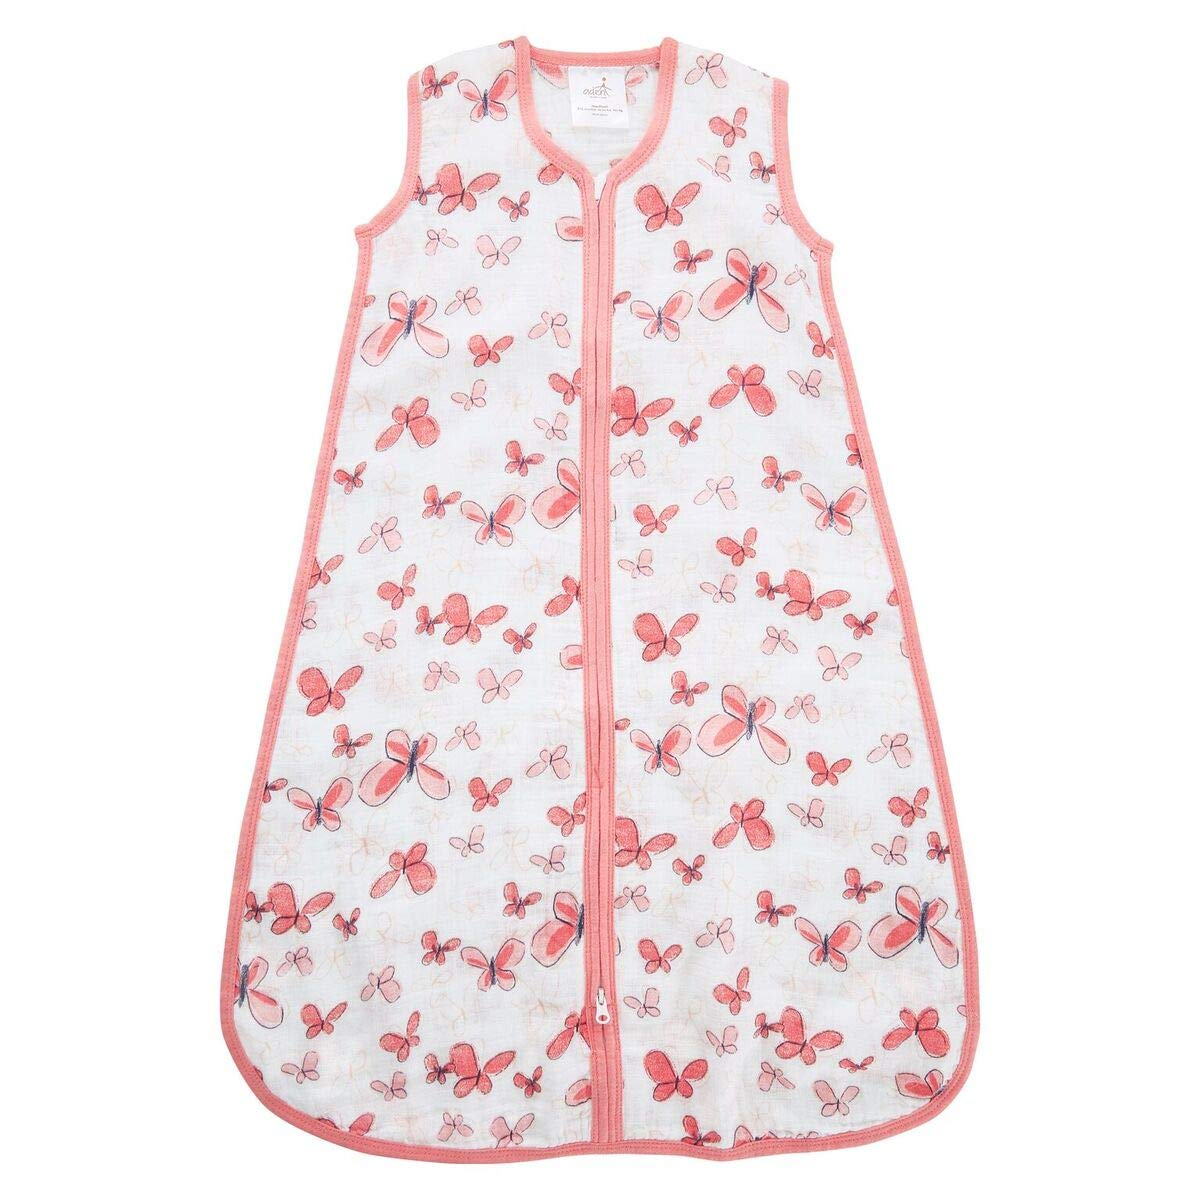 Aden by Aden + Anais Classic Sleeping Bag, 100% Cotton Muslin, Wearable Baby Blanket, Medium, 6-12 Months, Butterflies - Aflutter…